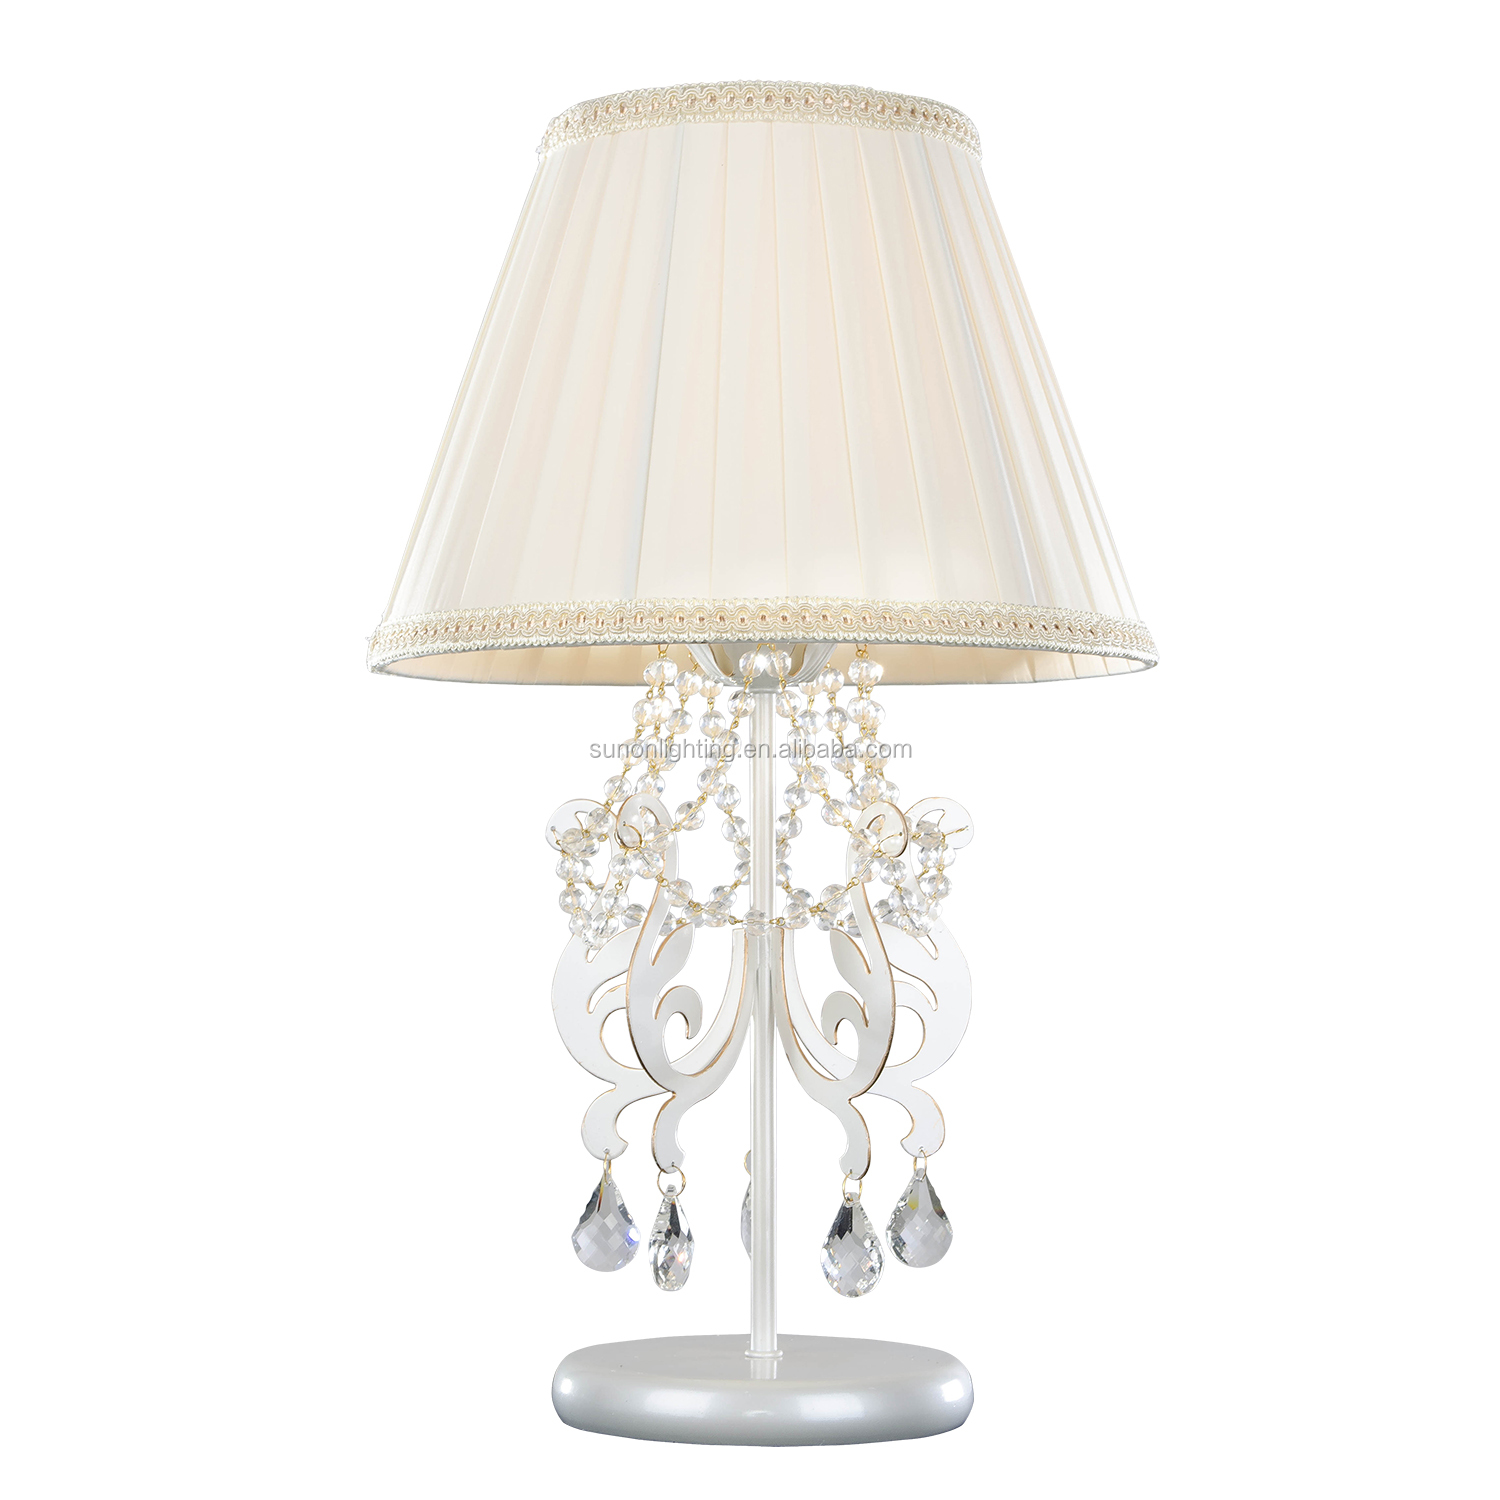 European design indoor princess indoor family crystal table lamp